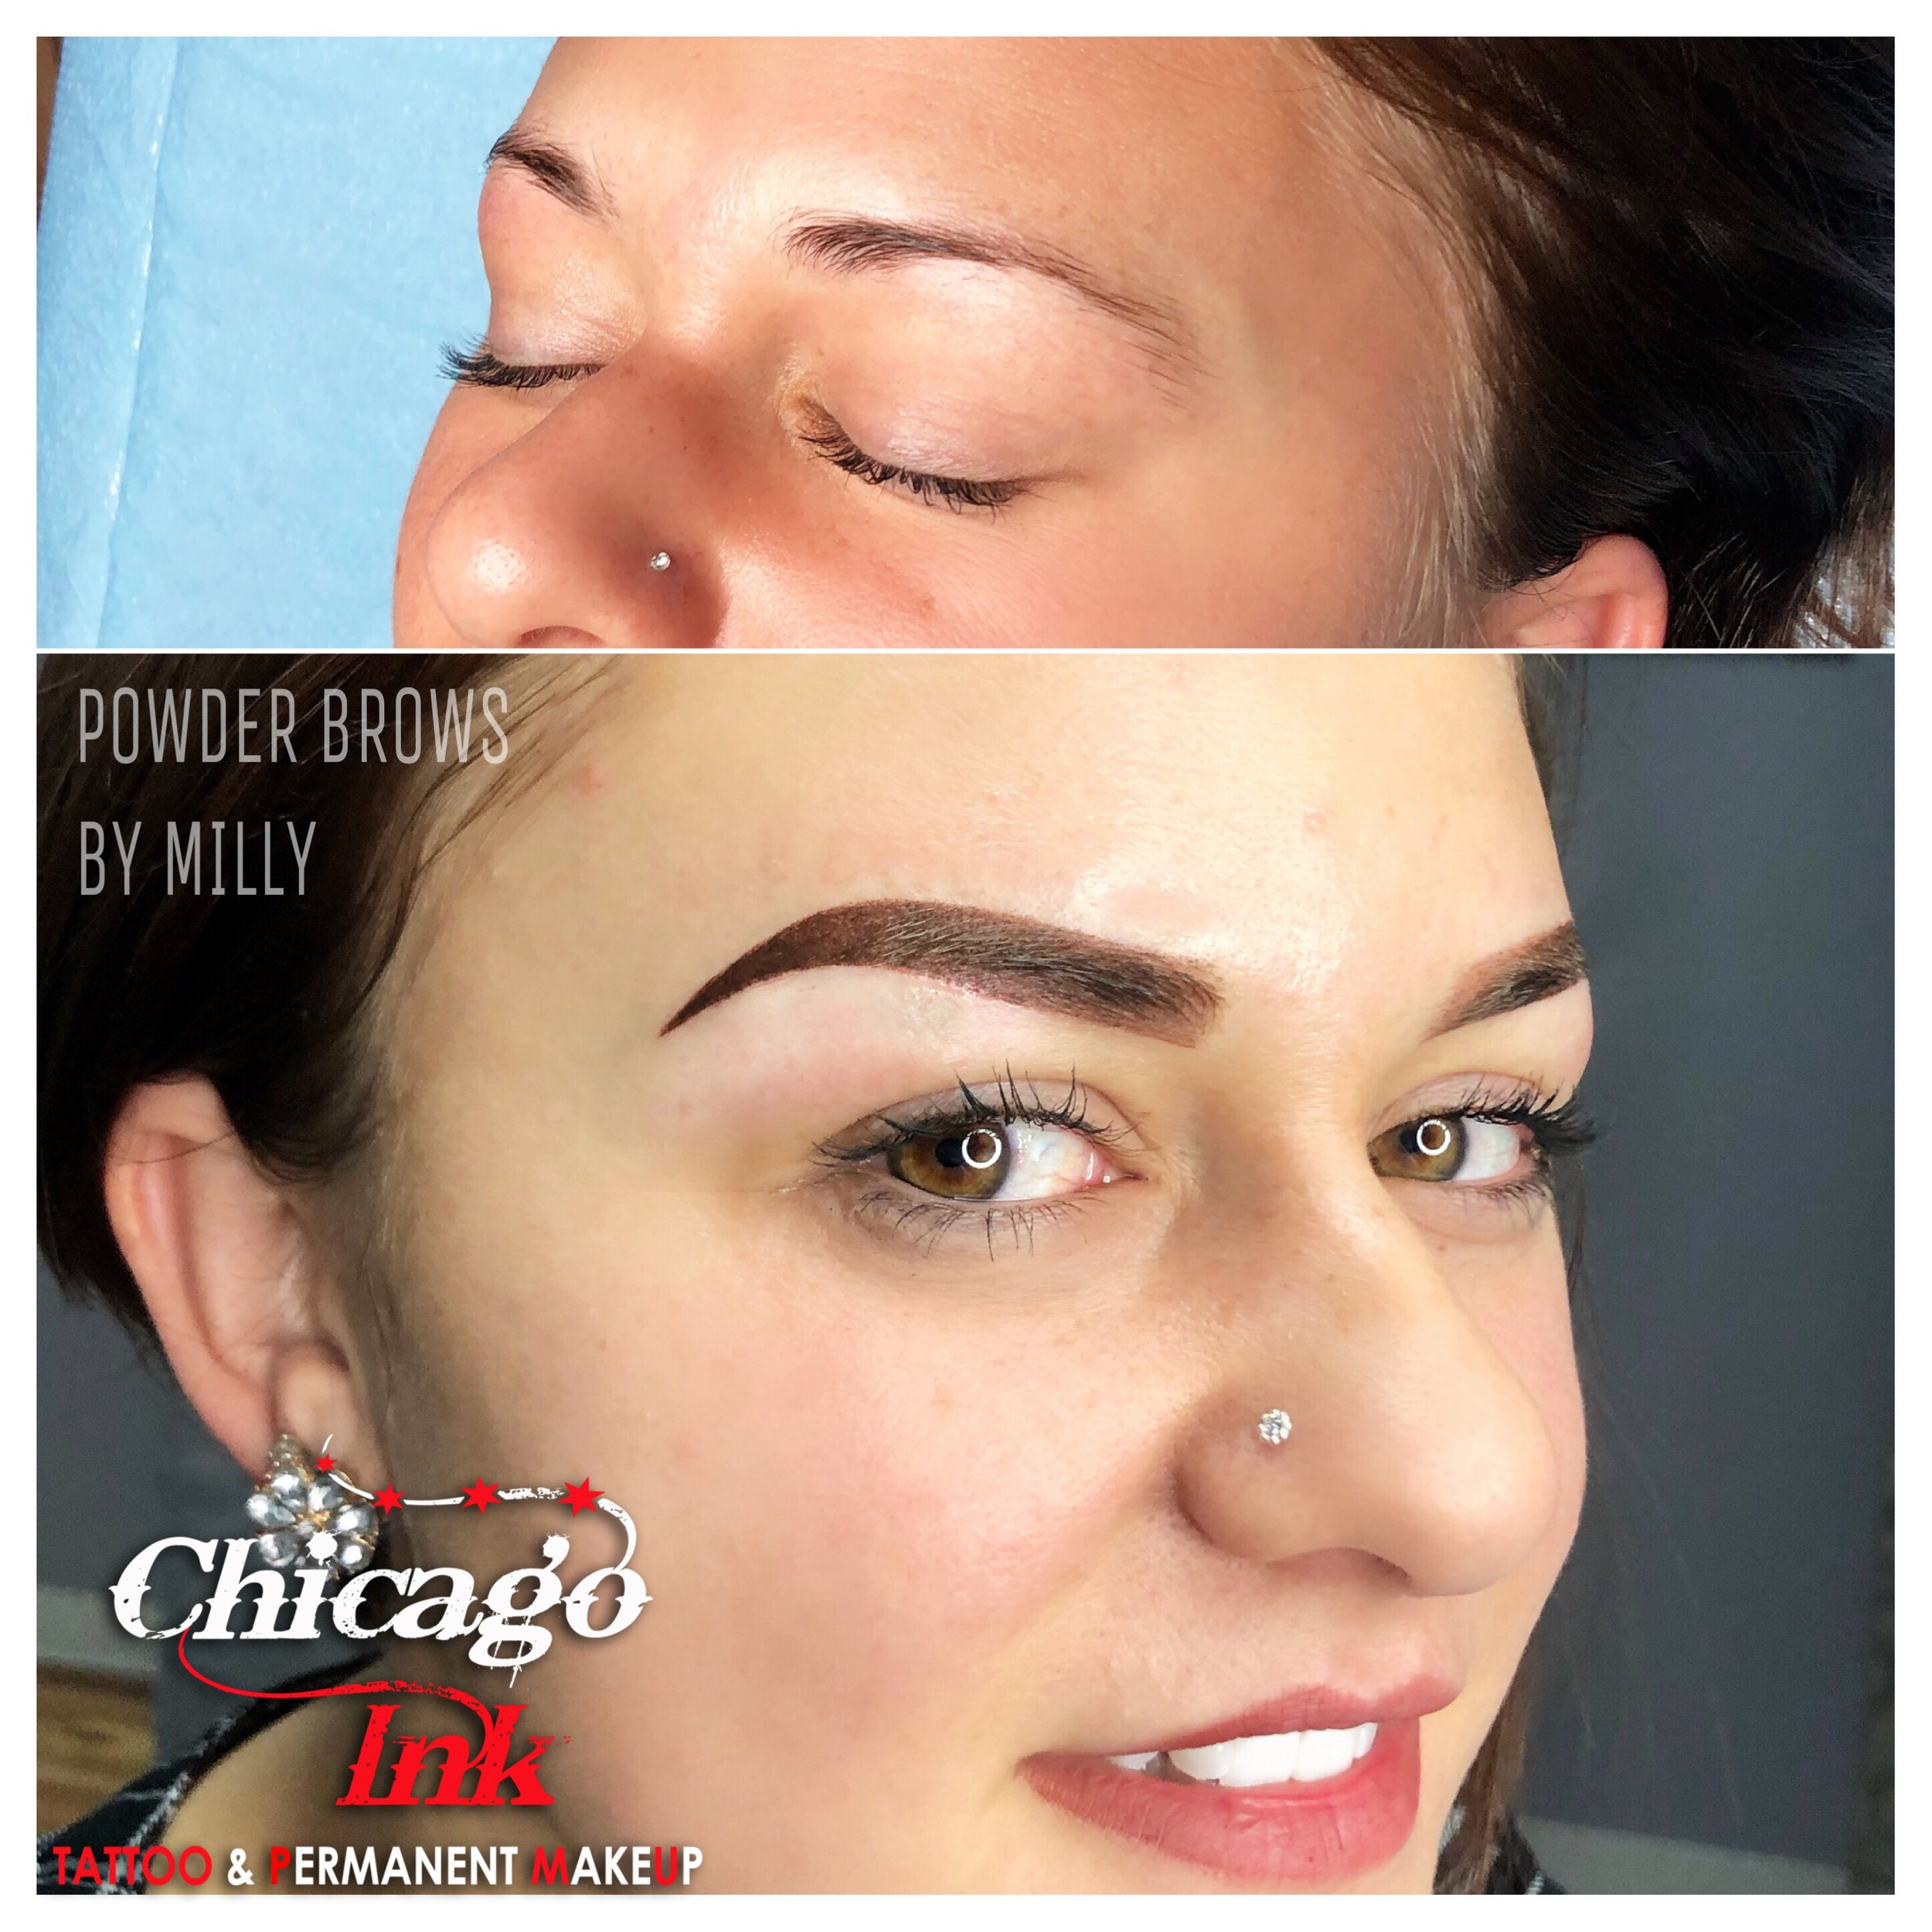 Powder Brows by Milly